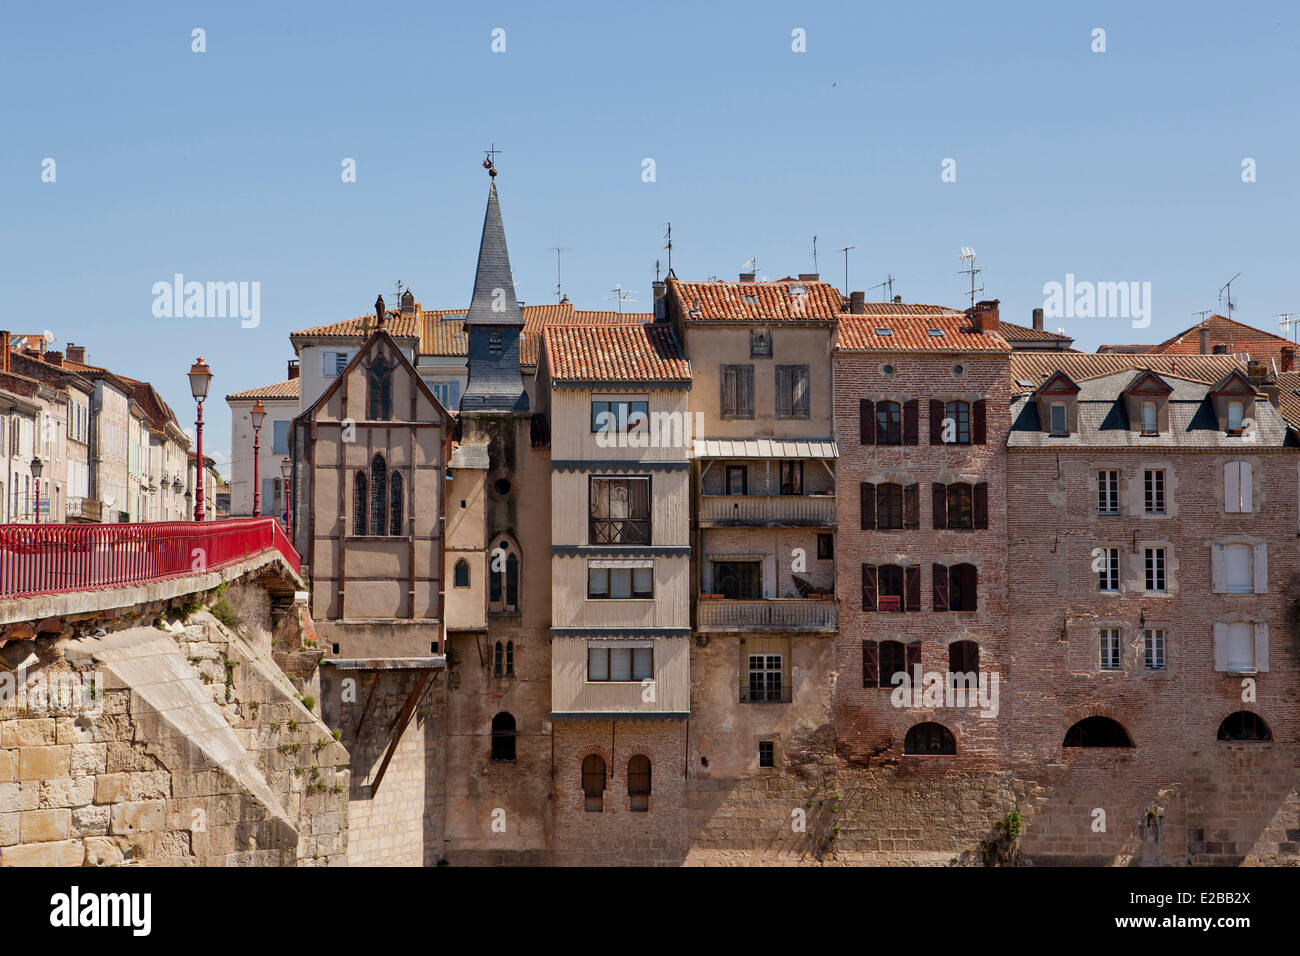 france lot et garonne villeneuve sur lot the bastide medieval stock photo royalty free. Black Bedroom Furniture Sets. Home Design Ideas